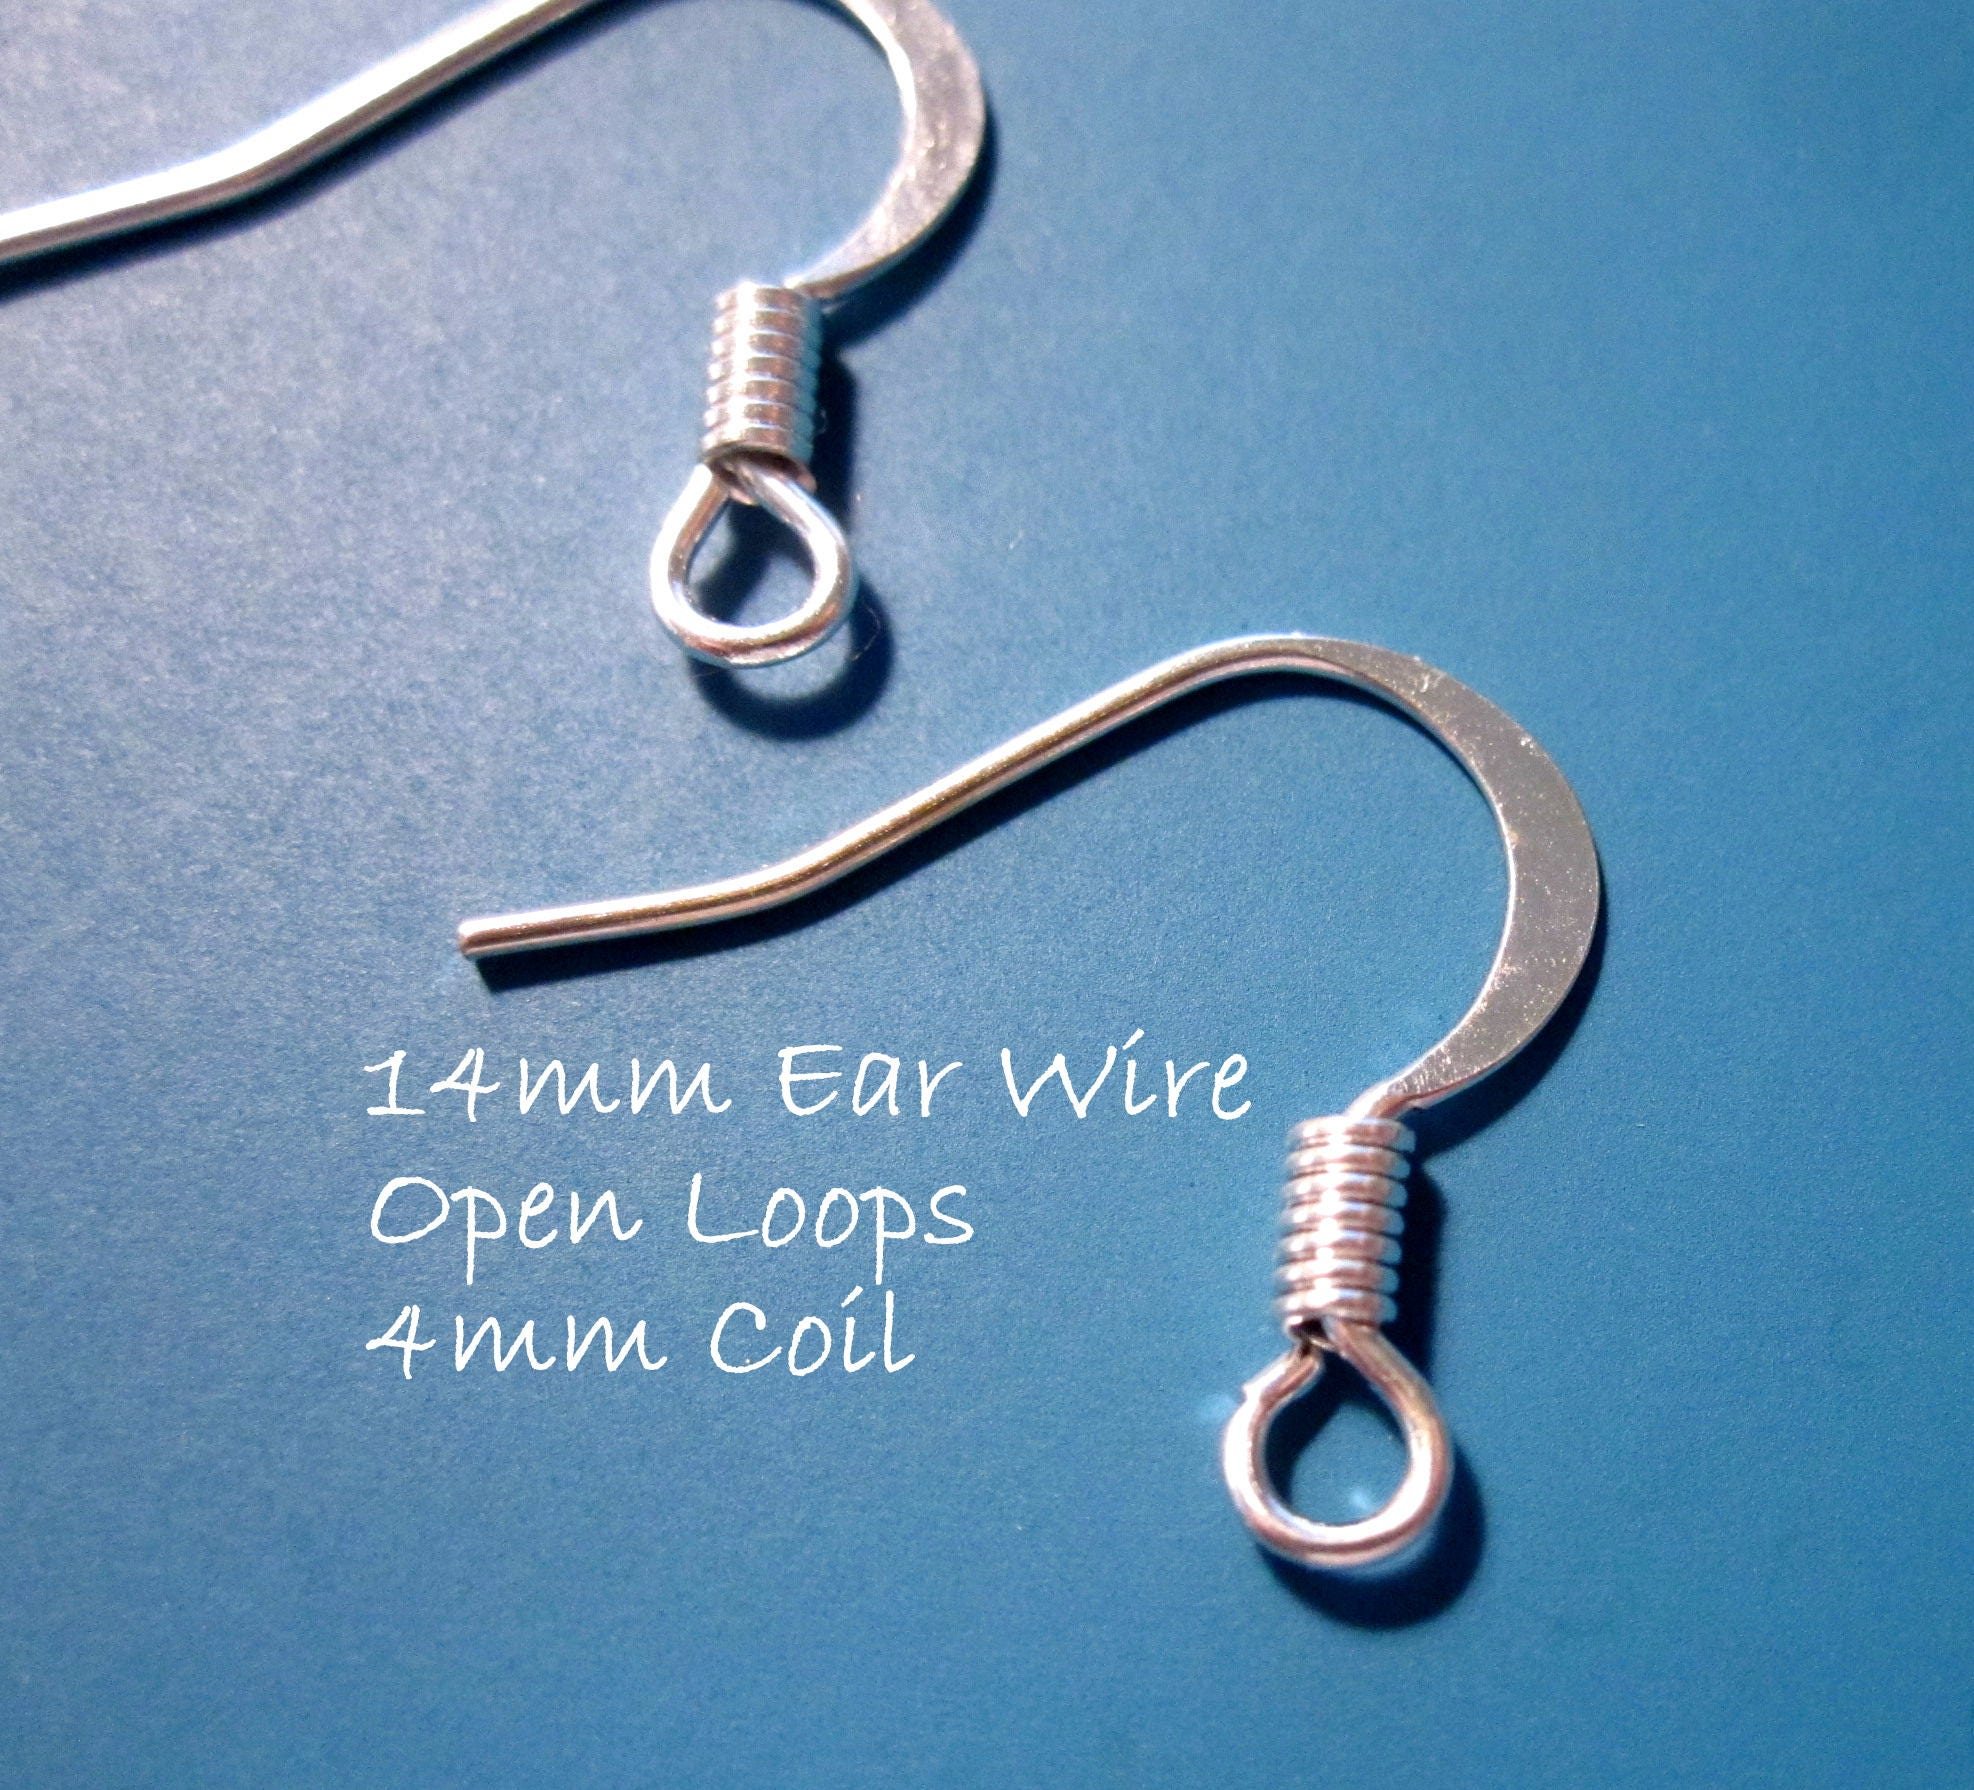 Earwires 30pcs Ear wires Silver-plated 14mm Flat Fishhook with 4mm ...